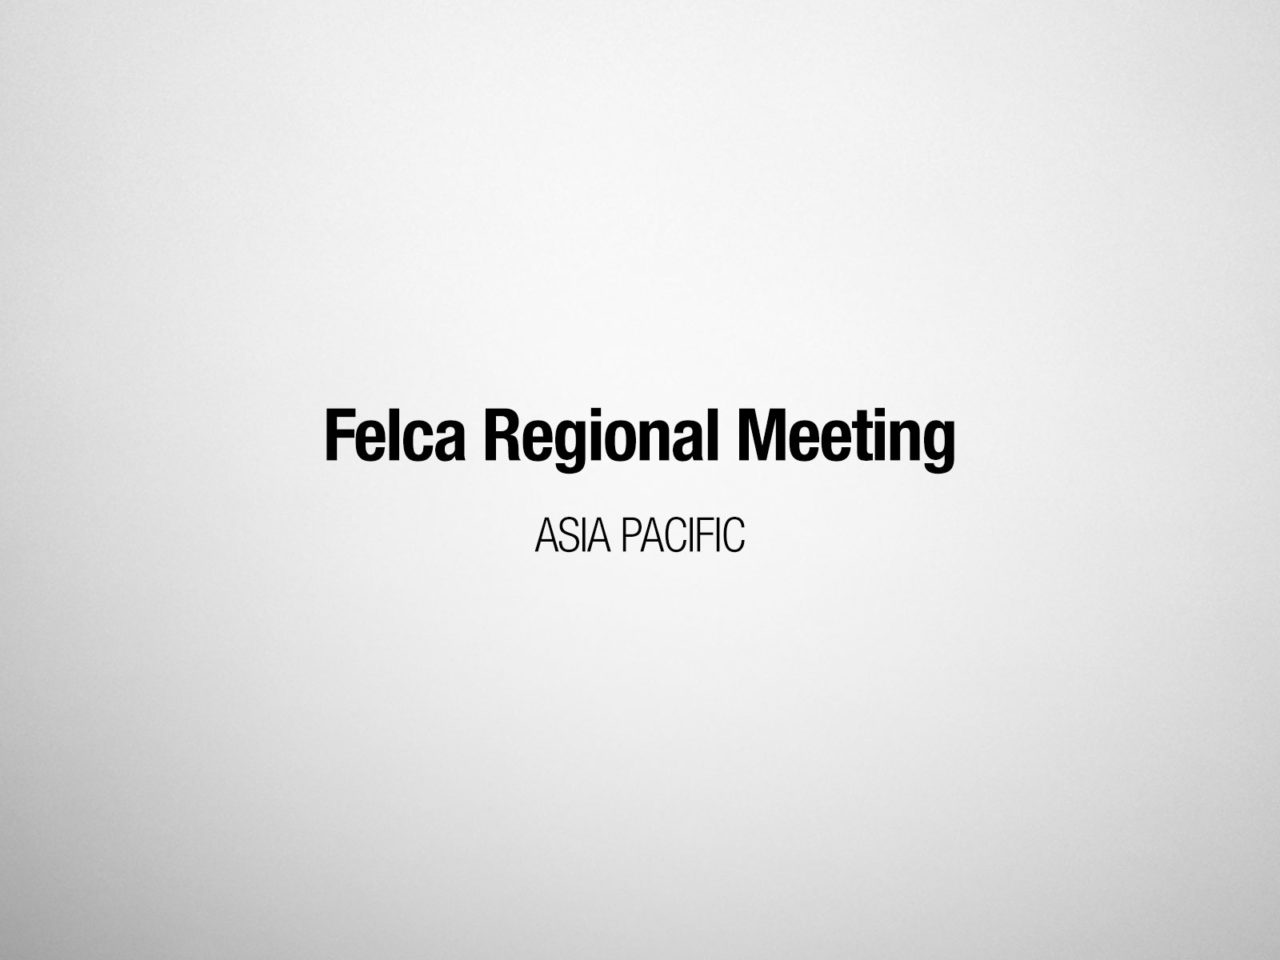 Felca Regional Meeting – Asia Pacific